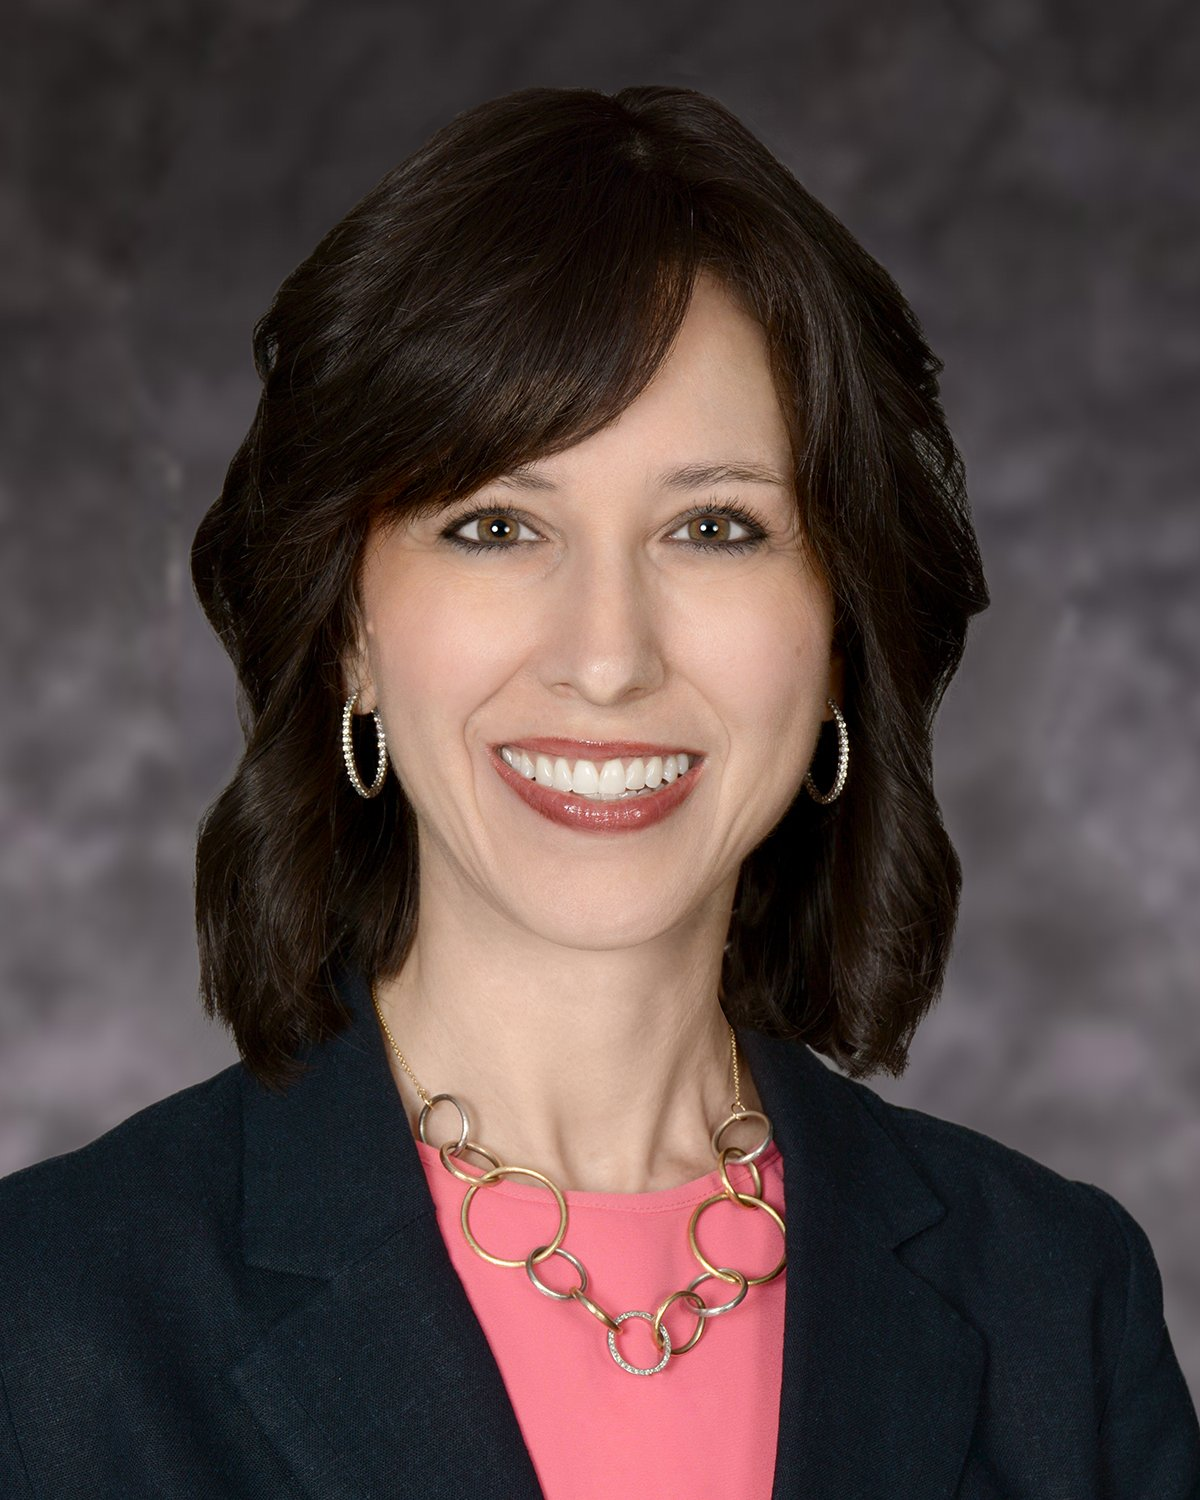 Sara Nagel, Au. D. - The Center for Audiology - Houston & Pearland TX